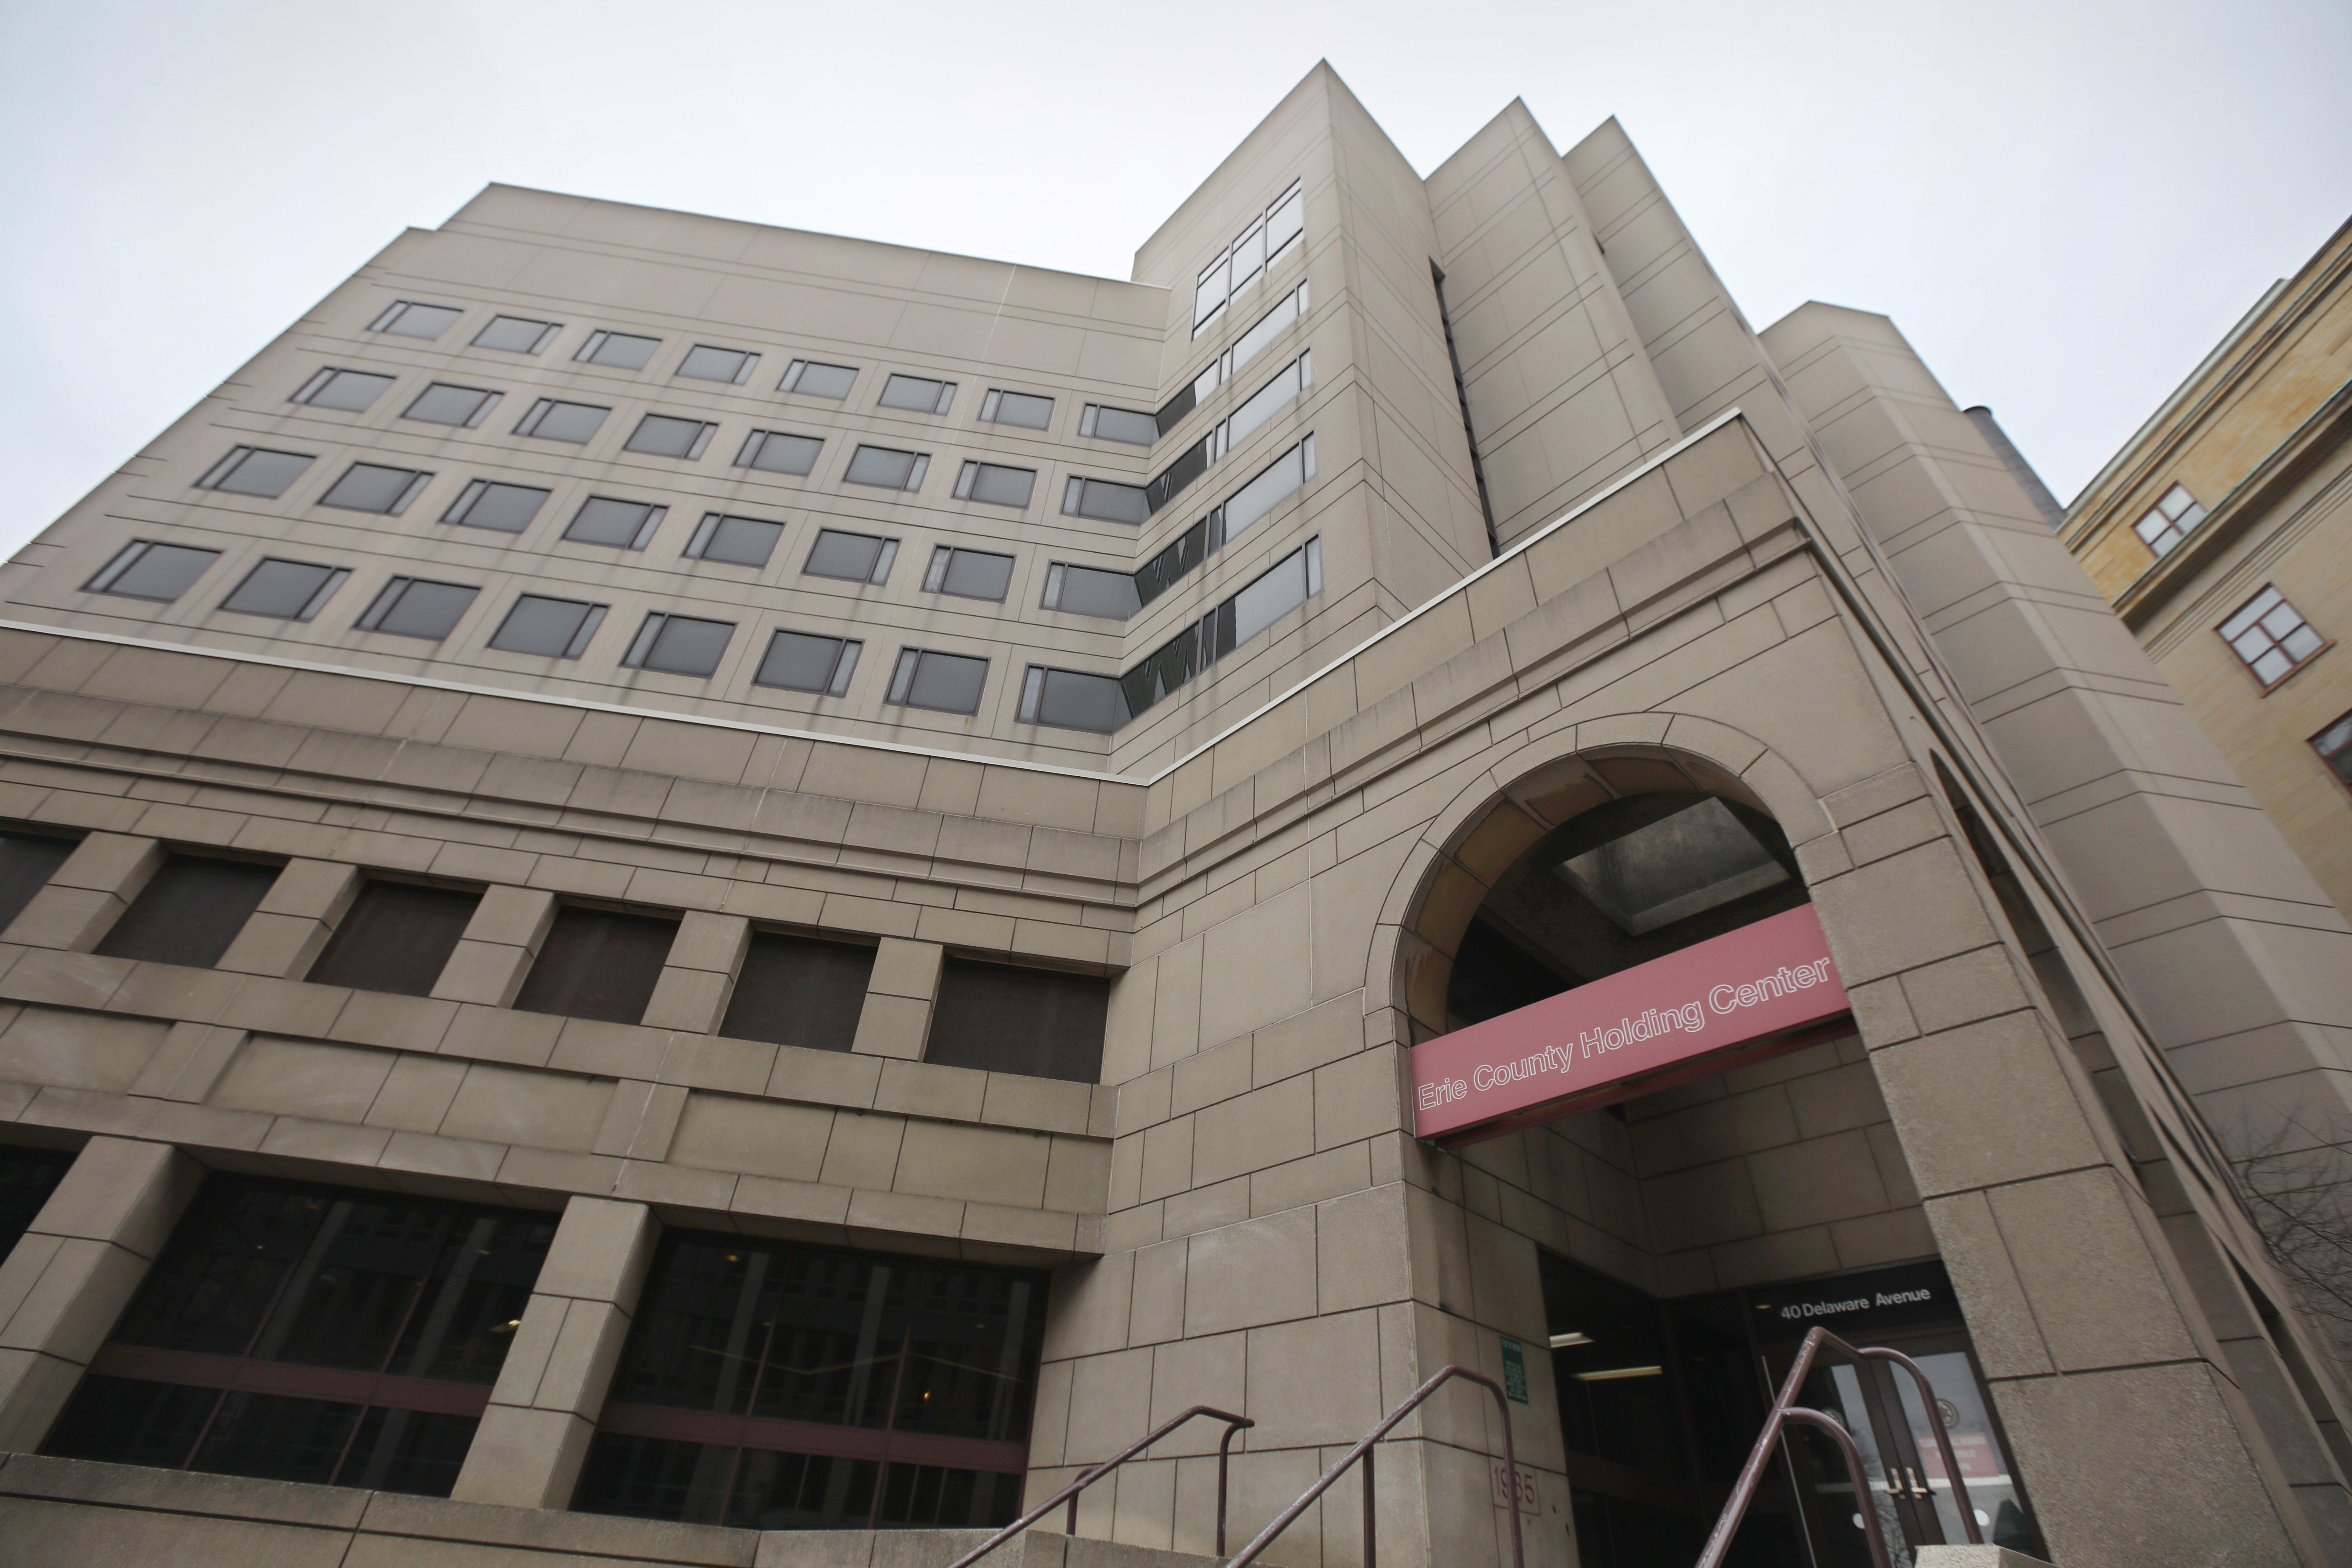 The Erie County Holding Center in downtown Buffalo Wednesday, March 13, 2019.  India Cummings was held here for 21 days without treatment, which contributed to her death.